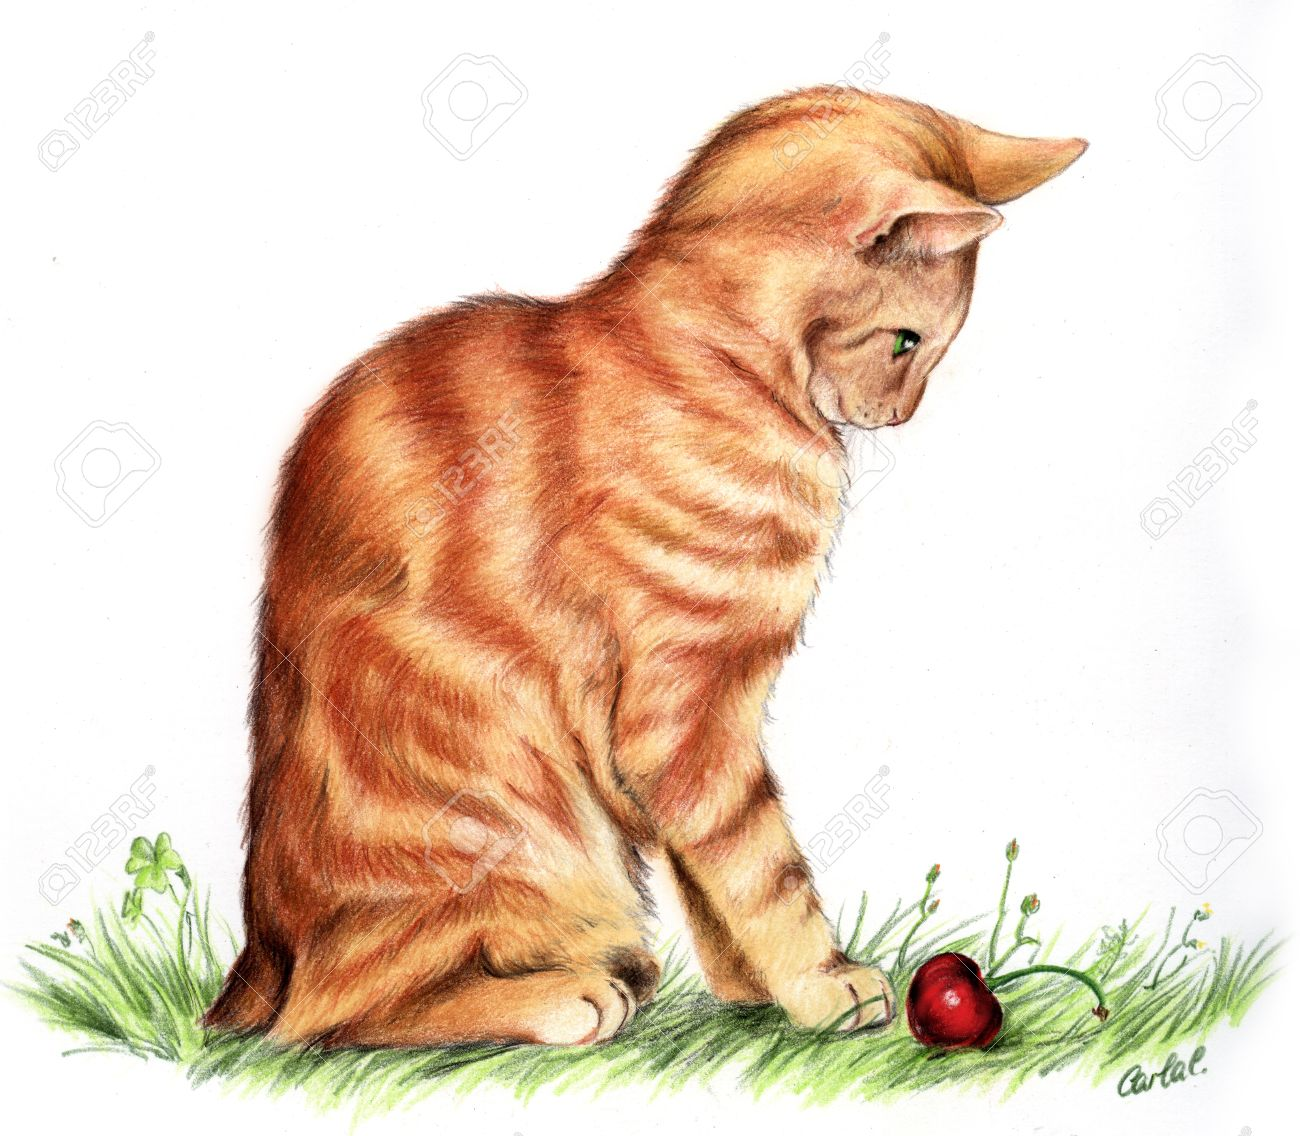 Cute hand drawn Manx Red cat, made with pencils. Stock Photo - 11220846